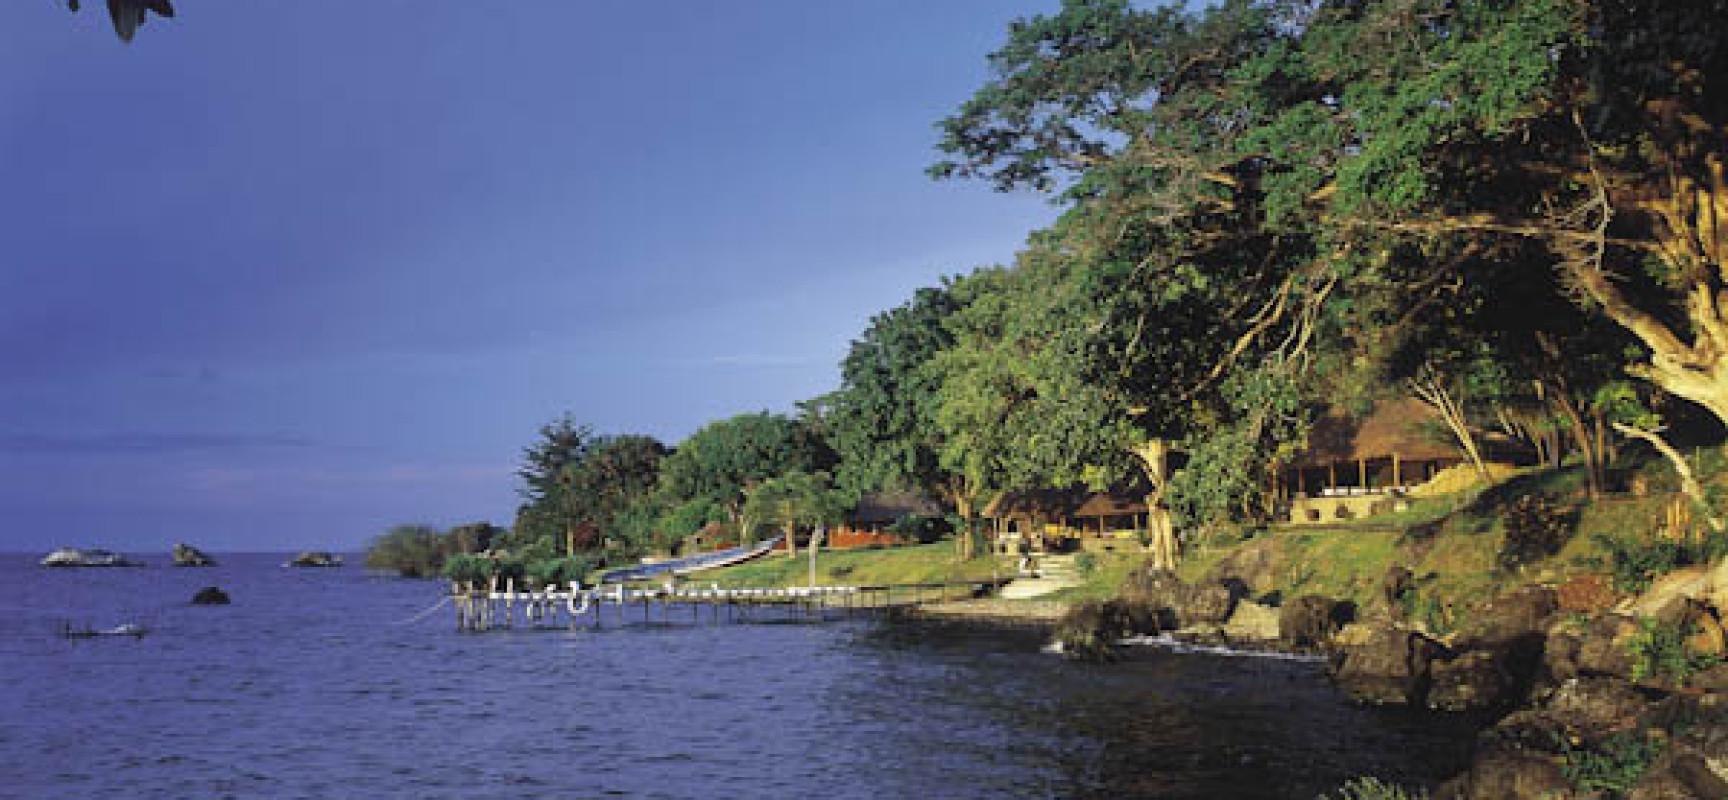 Lake Victoria Hotels Kenya